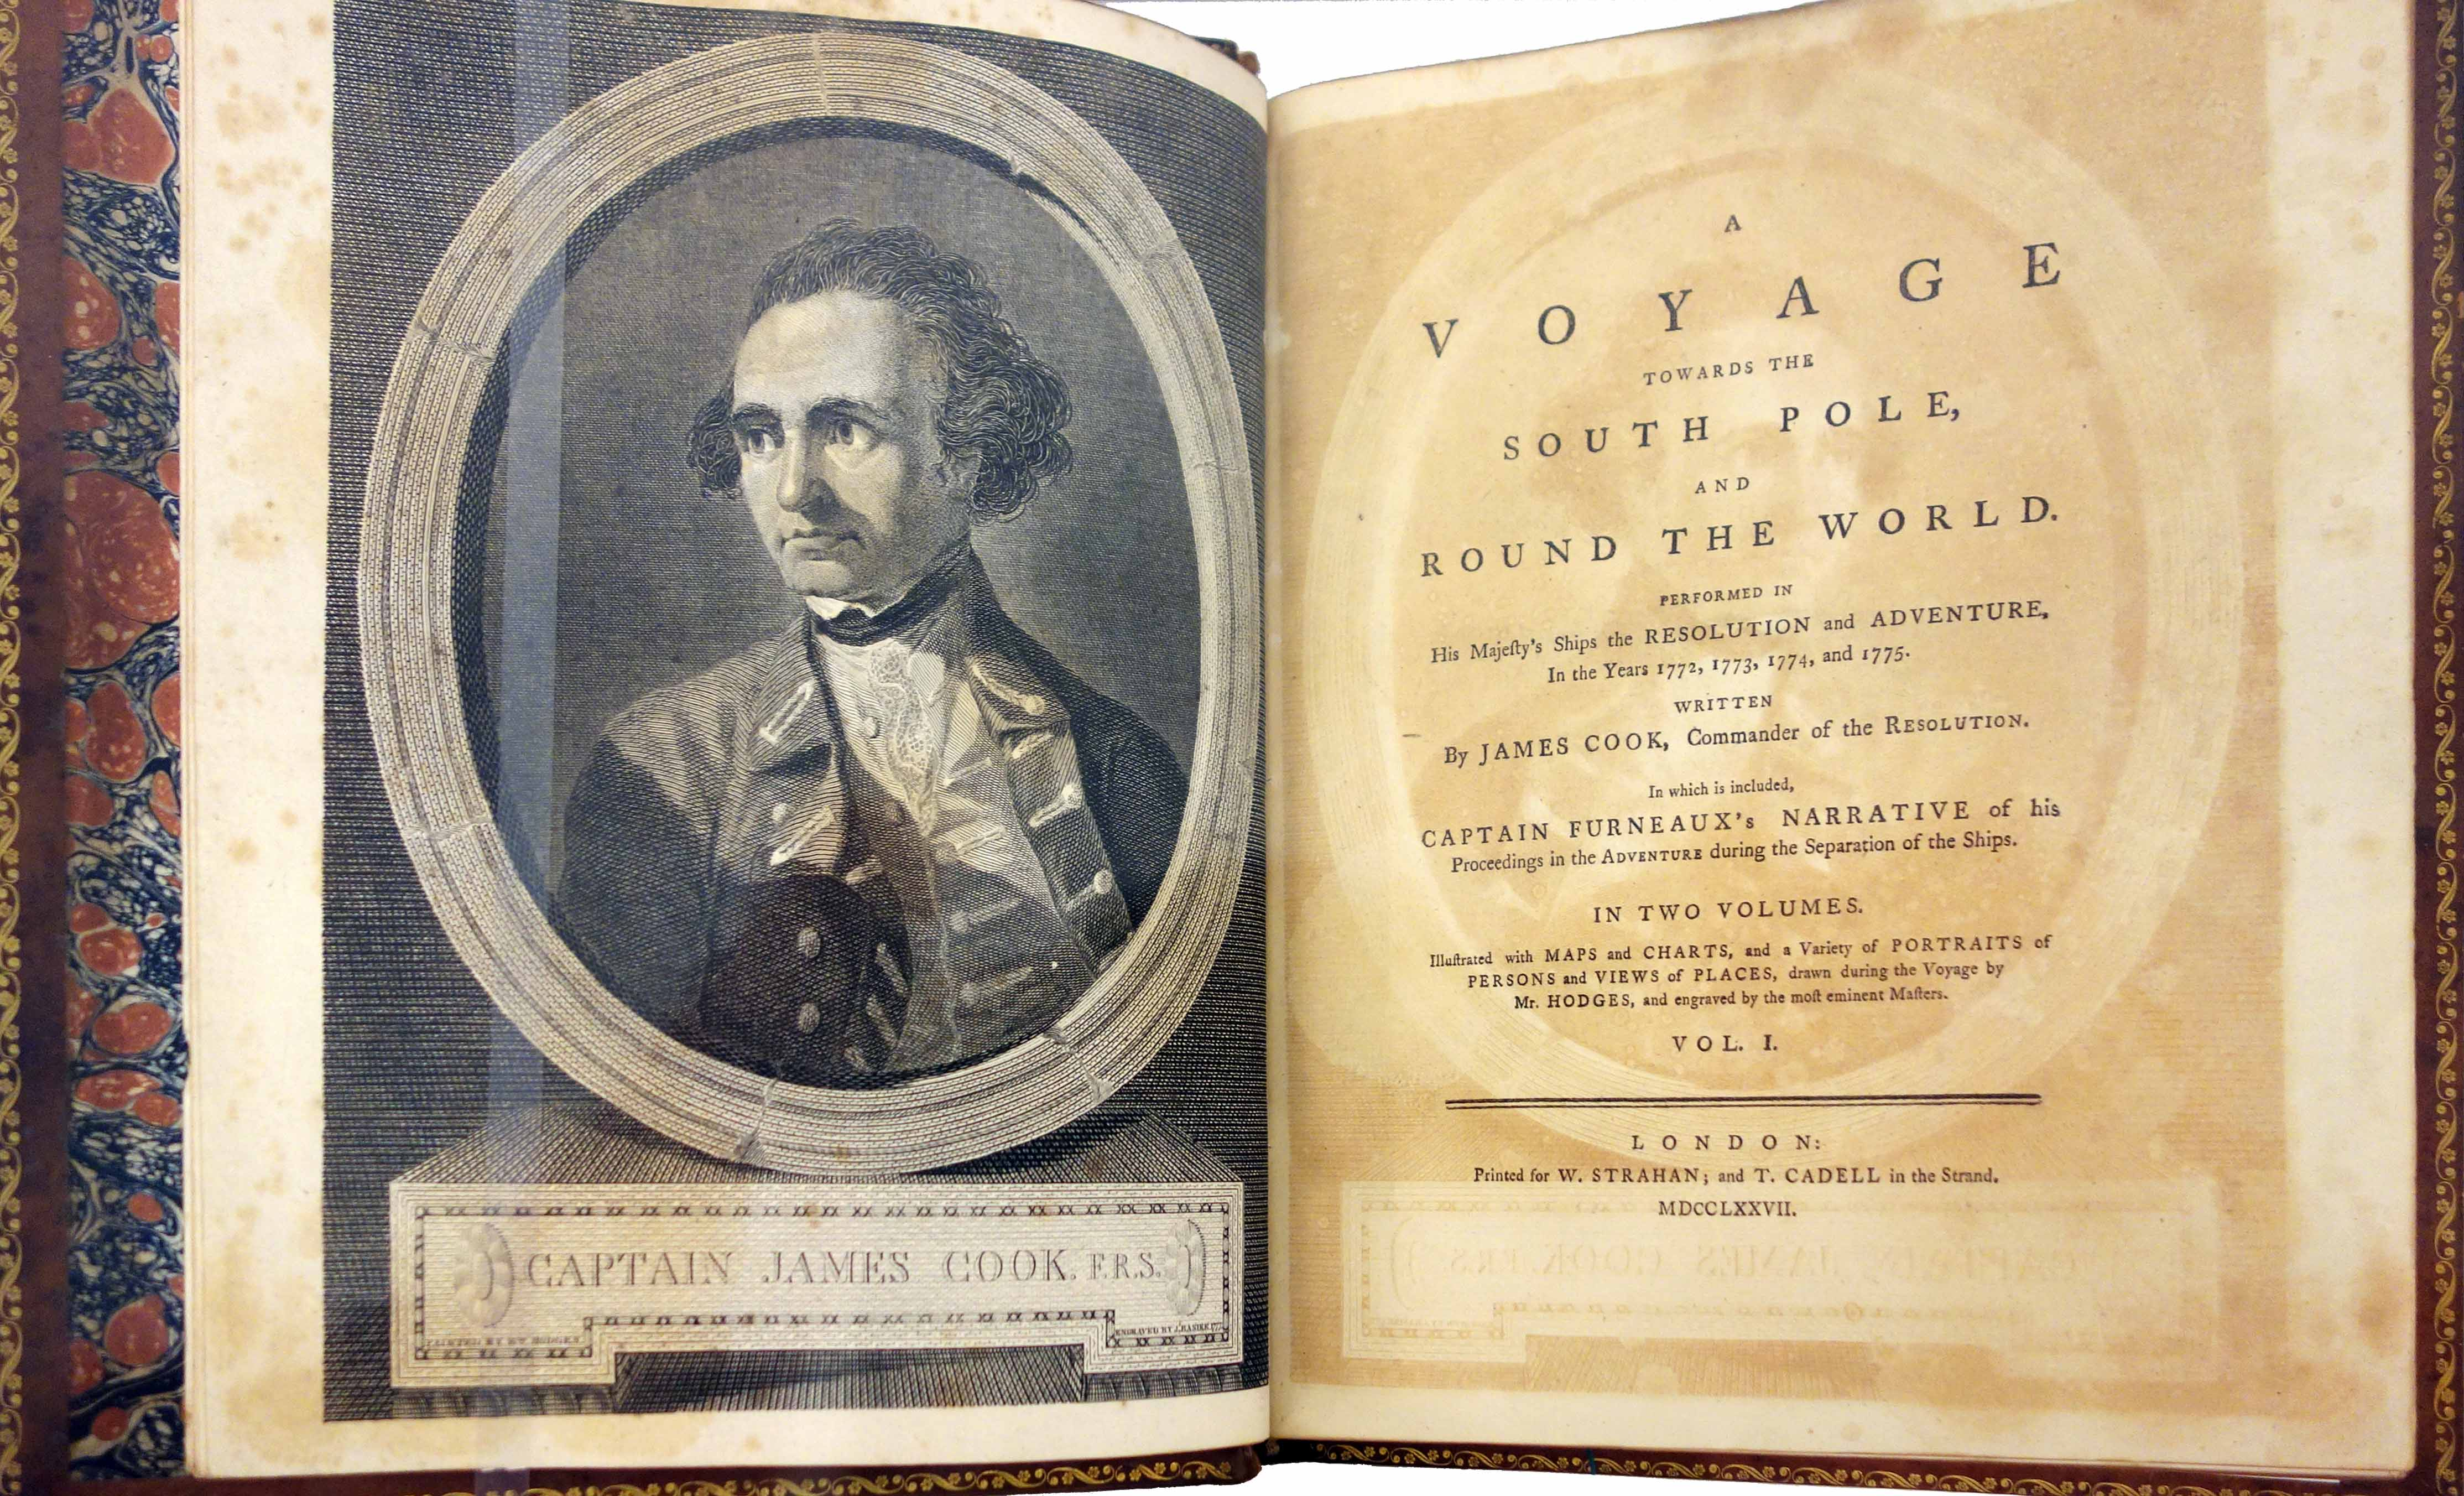 Captain James Cook, A voyage towards the South Pole, and round the World. Performed in His Majesty's ships the Resolution and Adventure, in the years 1772, 1773, 1774, and 1775 (London: Printed for W. Strahan; and T. Cadell in the Strand. 1777), photo: Daderot CC0 1.0